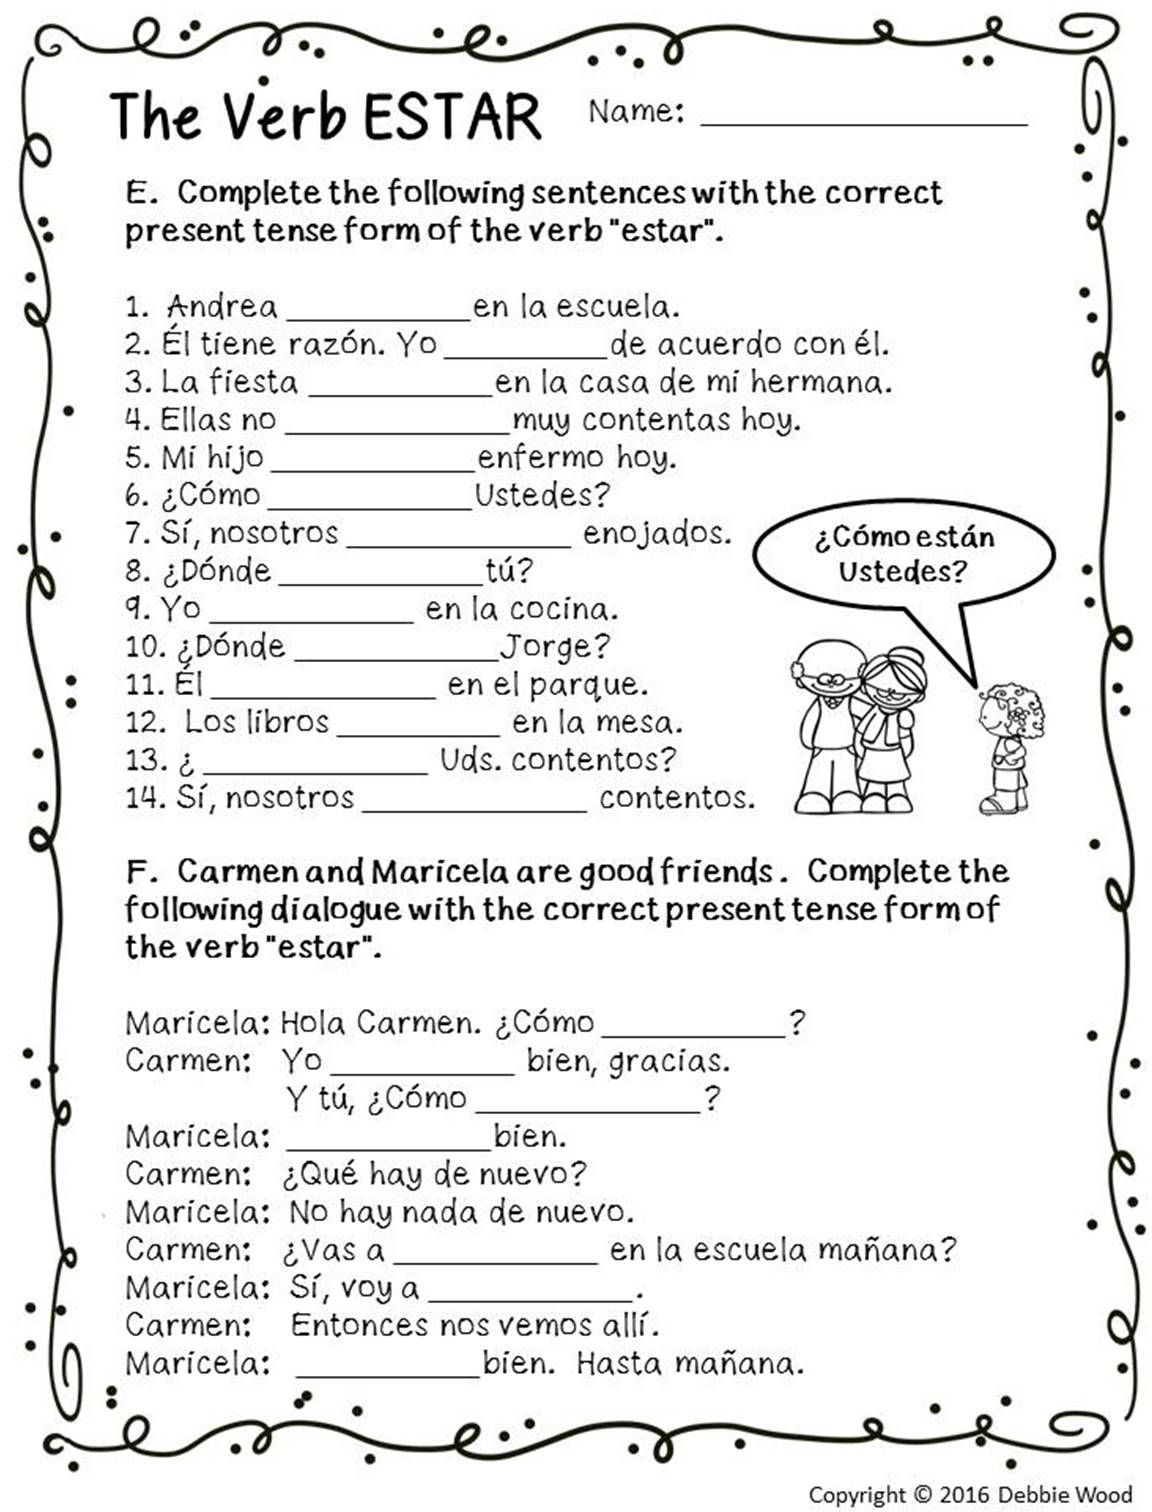 Worksheets 4th Grade Spanish Worksheets spanish verb estar posters and worksheets classroom classroom